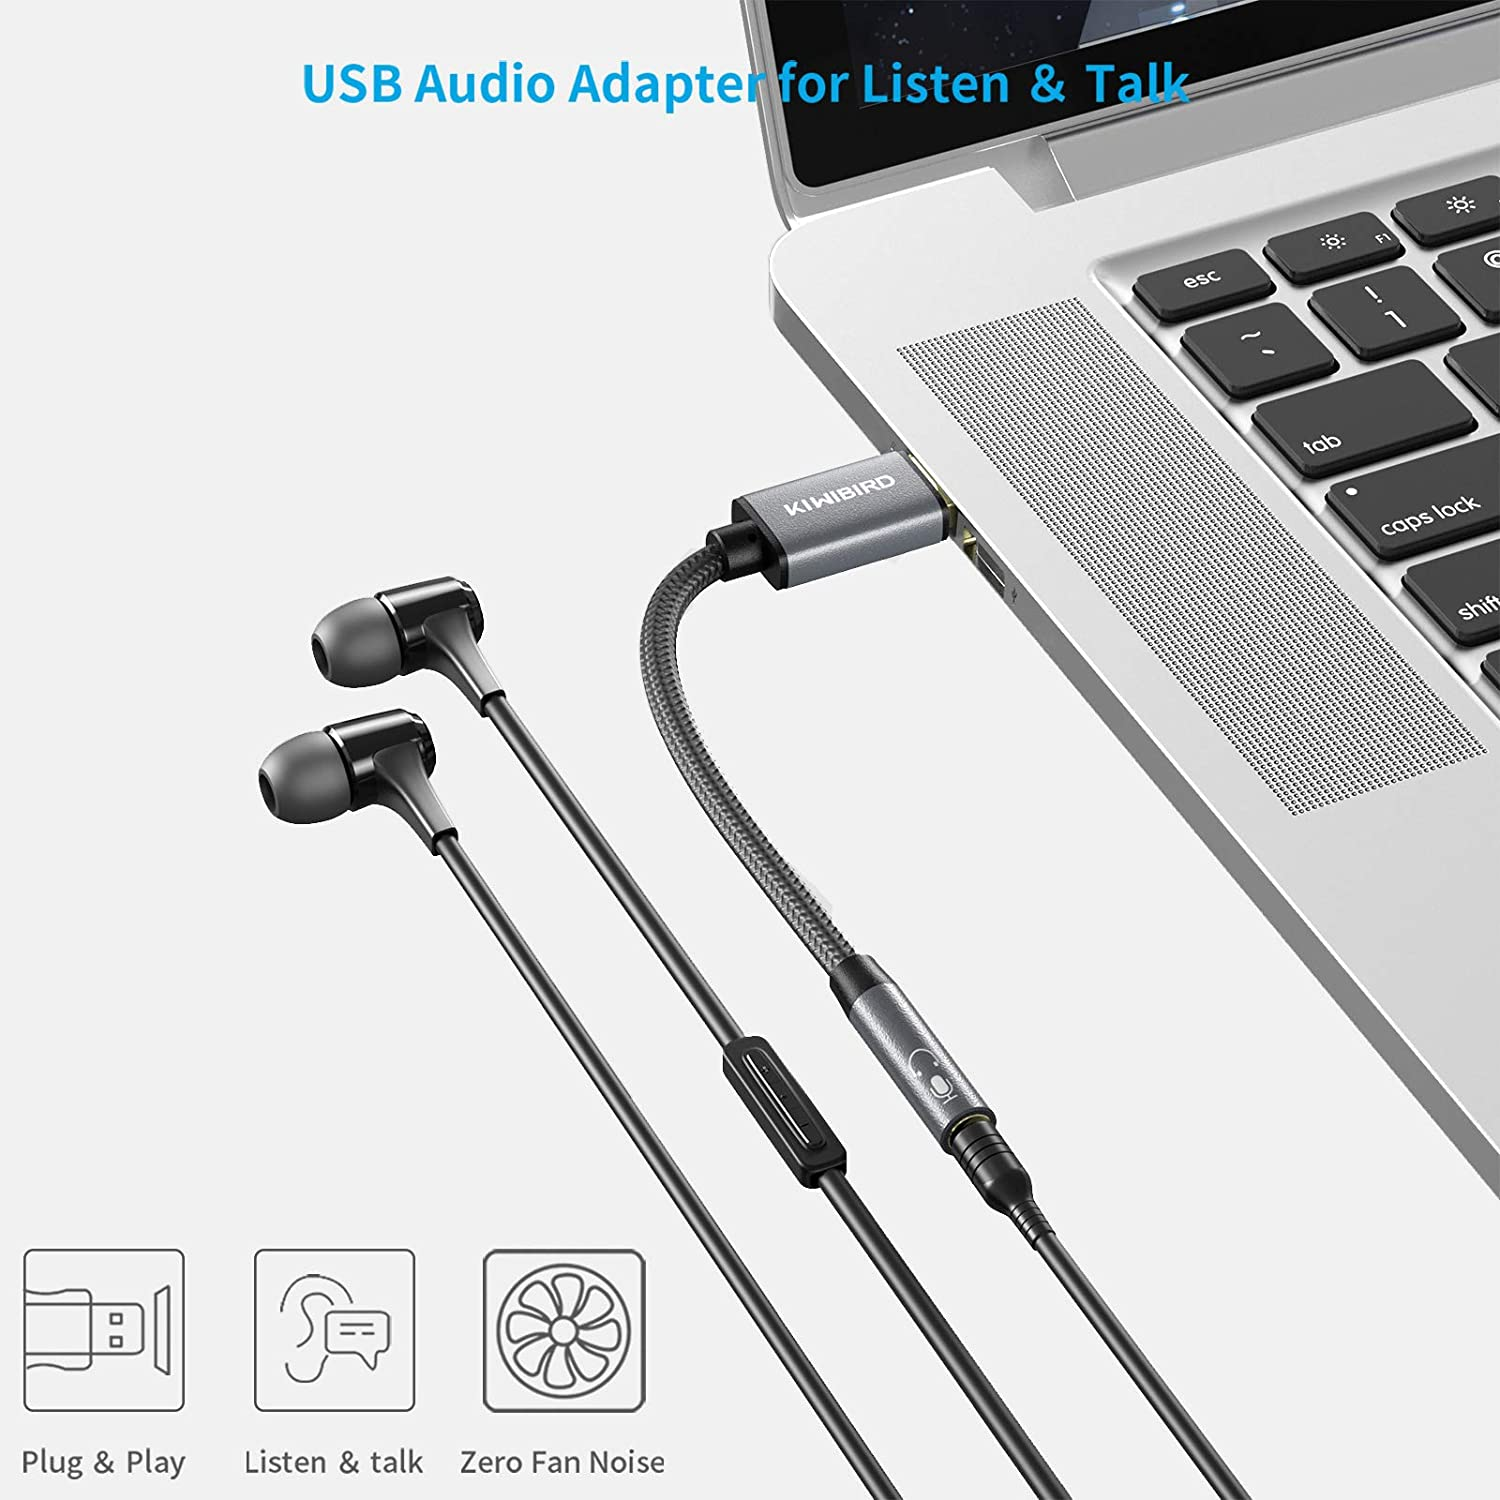 KiwiBird USB to 3.5mm Jack Audio Adapter Surface Projector PS3 External Sound Card for MacBook USB Headphone with Mic Headset Adapter NOT work with Car Laptop TRRS 4-pole TV PS4 Xbox